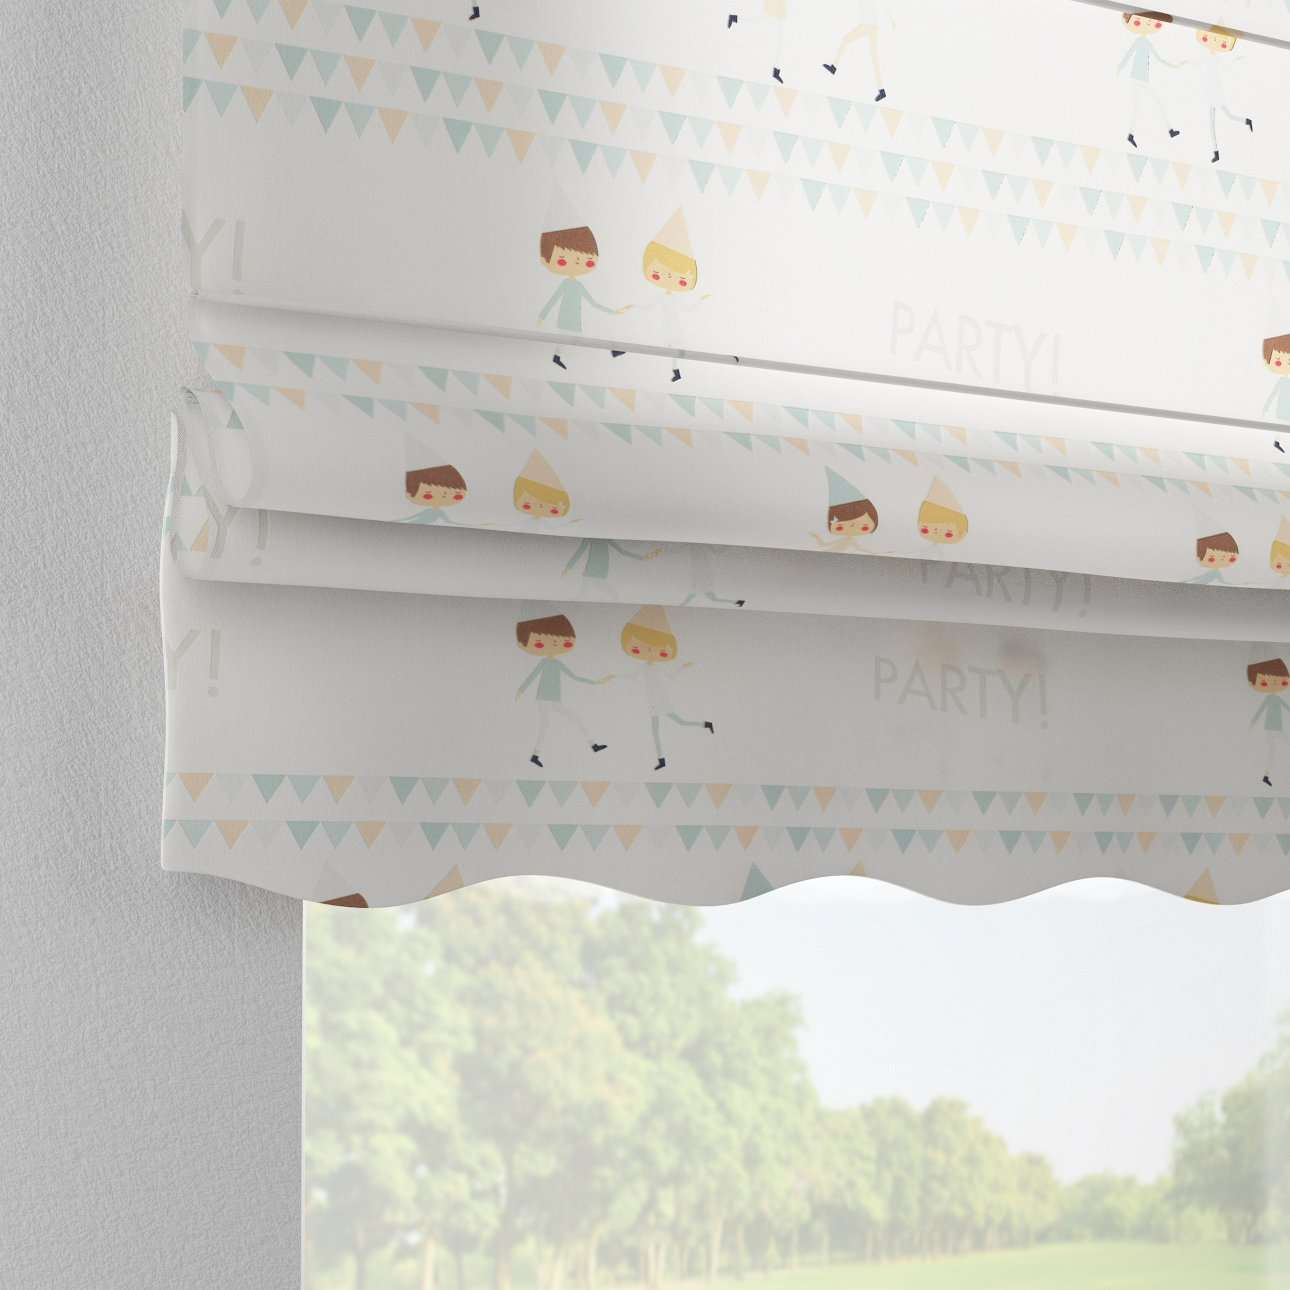 Florence roman blind  80 x 170 cm (31.5 x 67 inch) in collection Apanona, fabric: 151-01